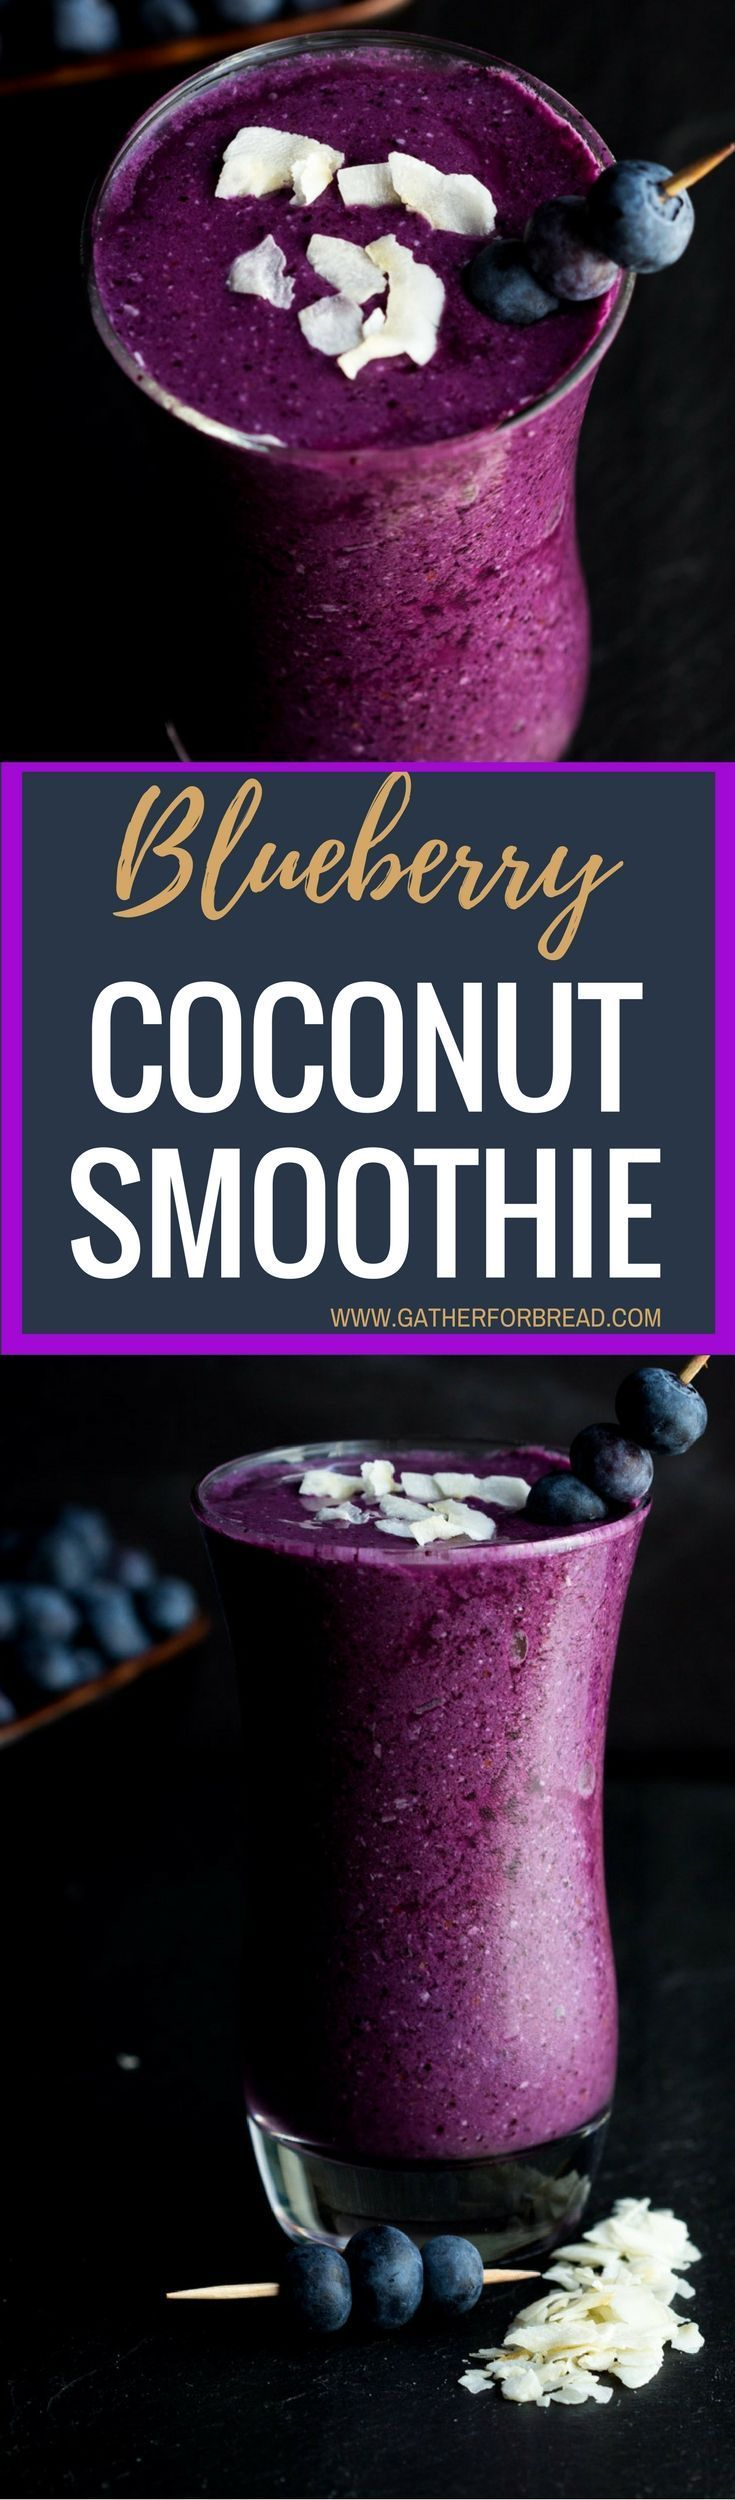 Blueberry Coconut Energy Smoothie – Smooth, creamy blueberry smoothie made with coconut milk, flakes and antioxidants for a healthy fresh way to start your day.